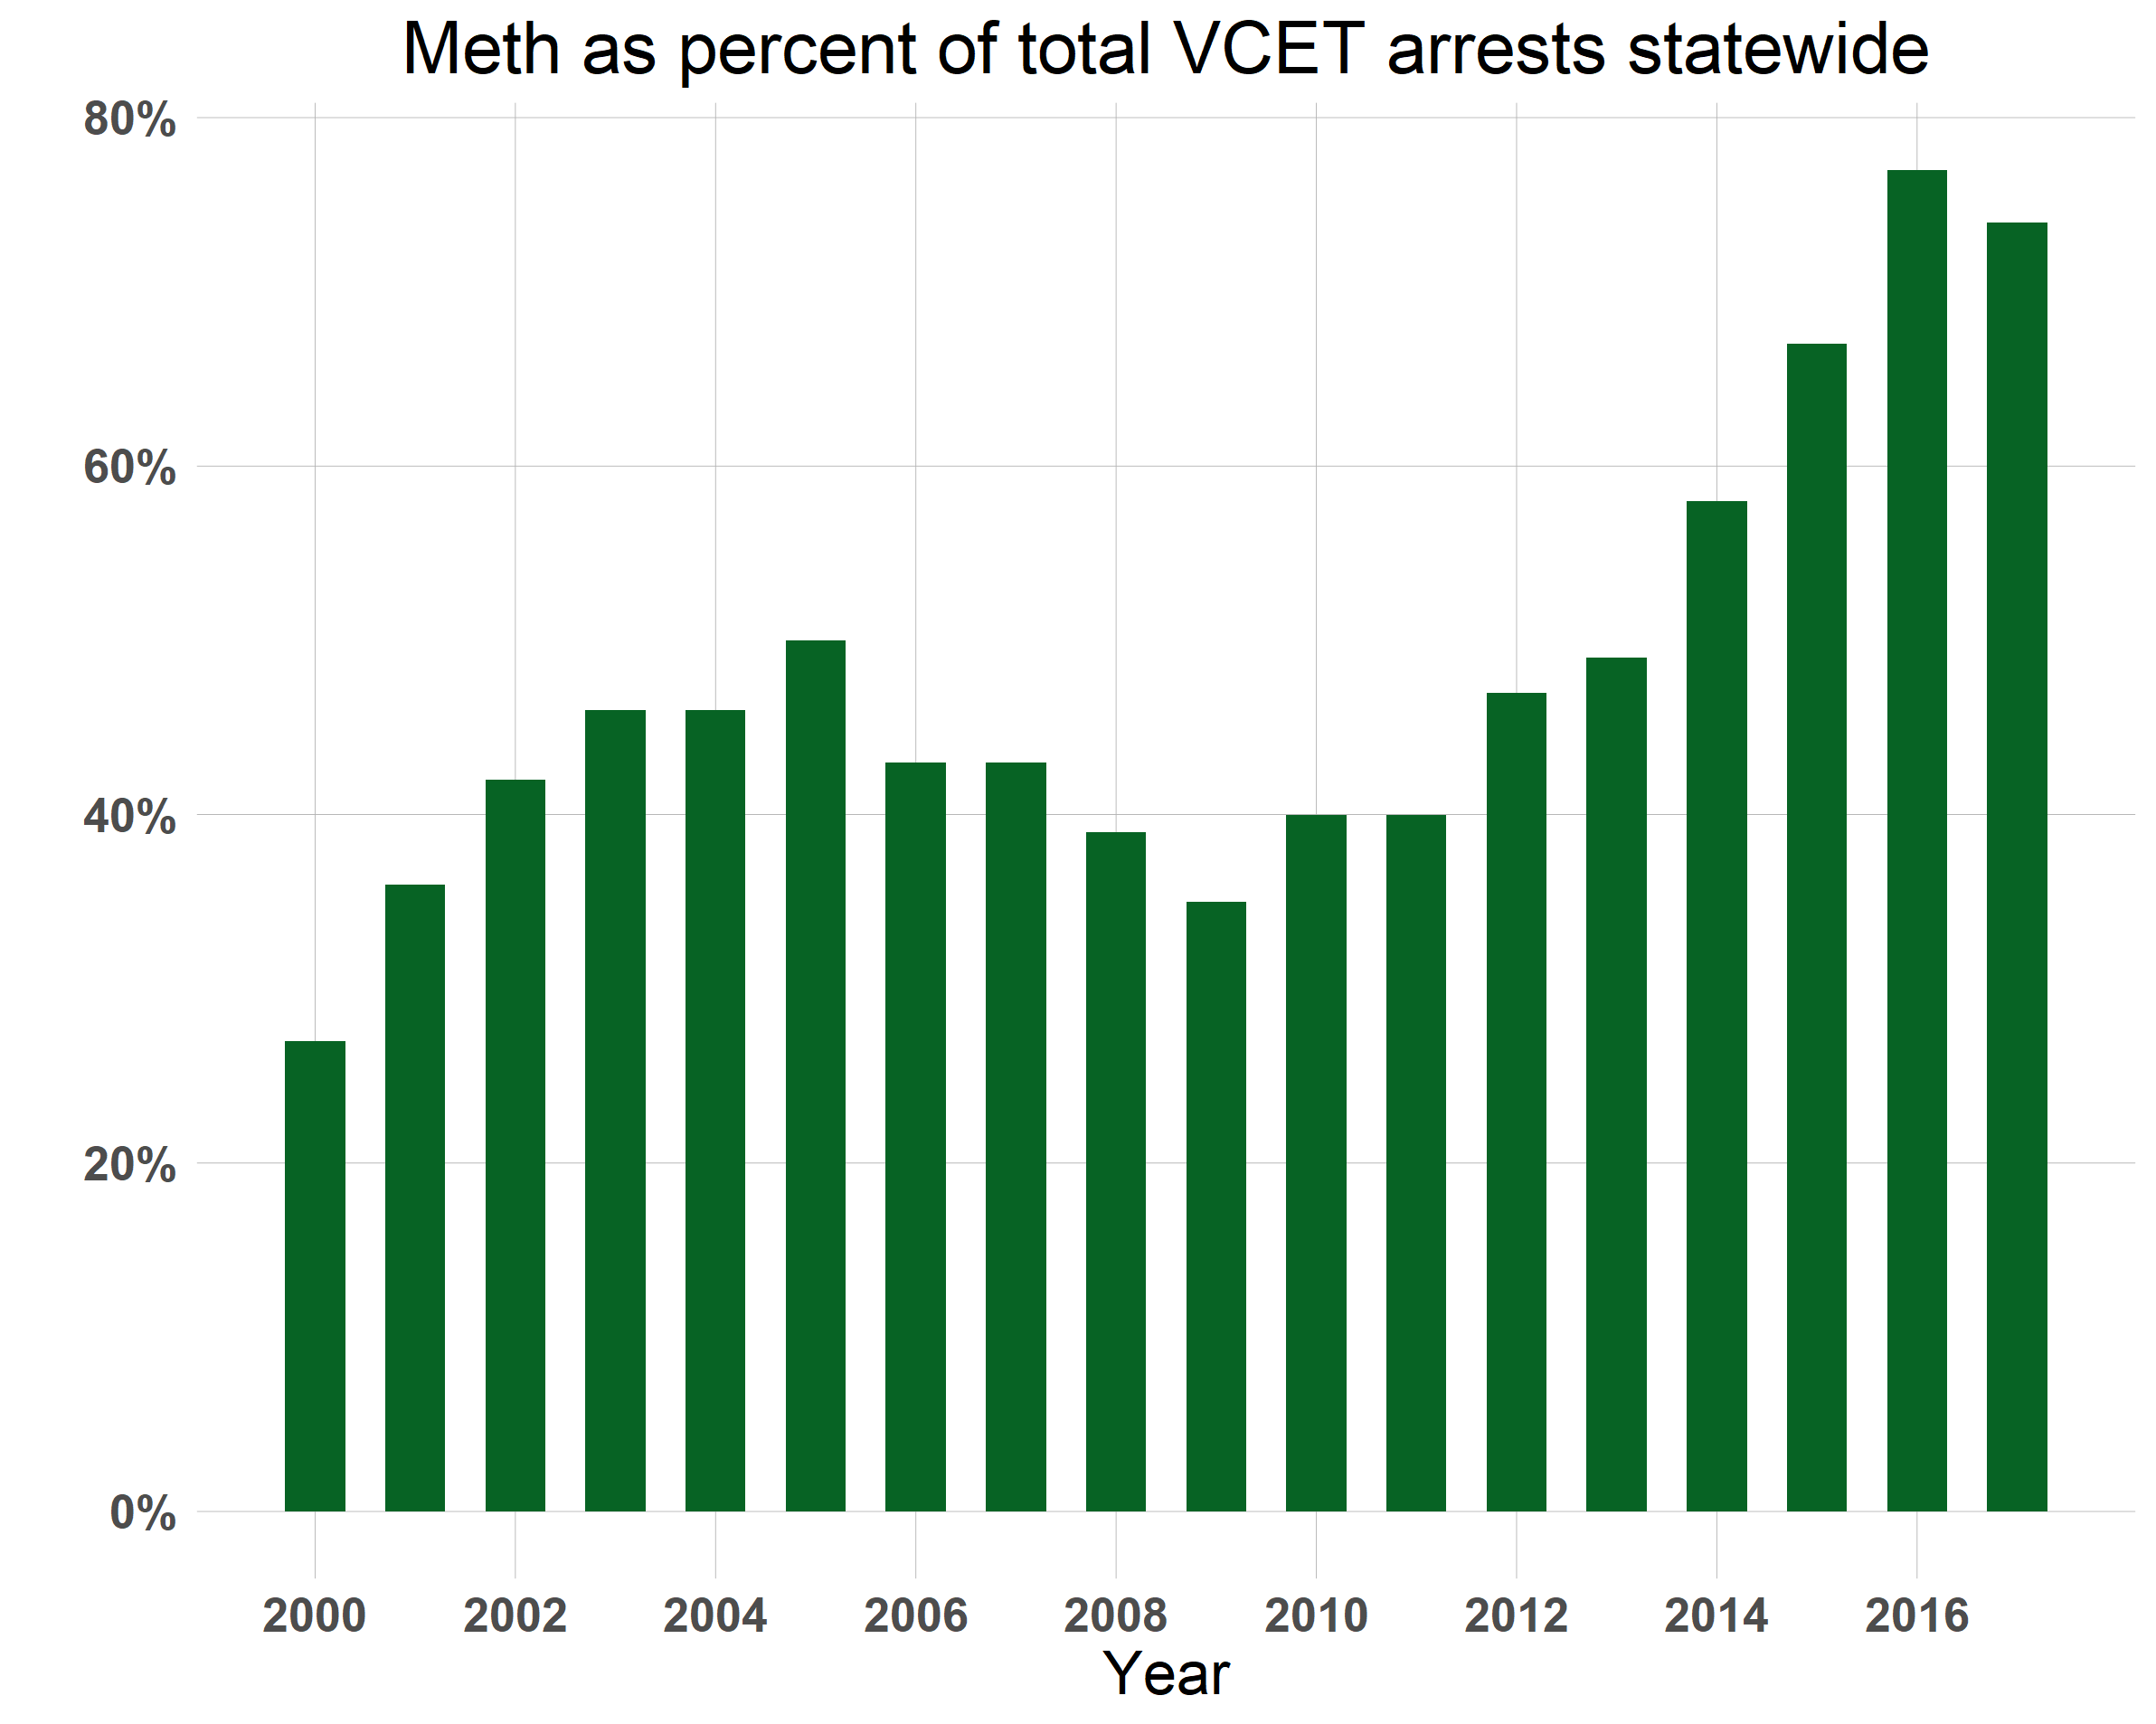 meth as percent of total VCET arrests